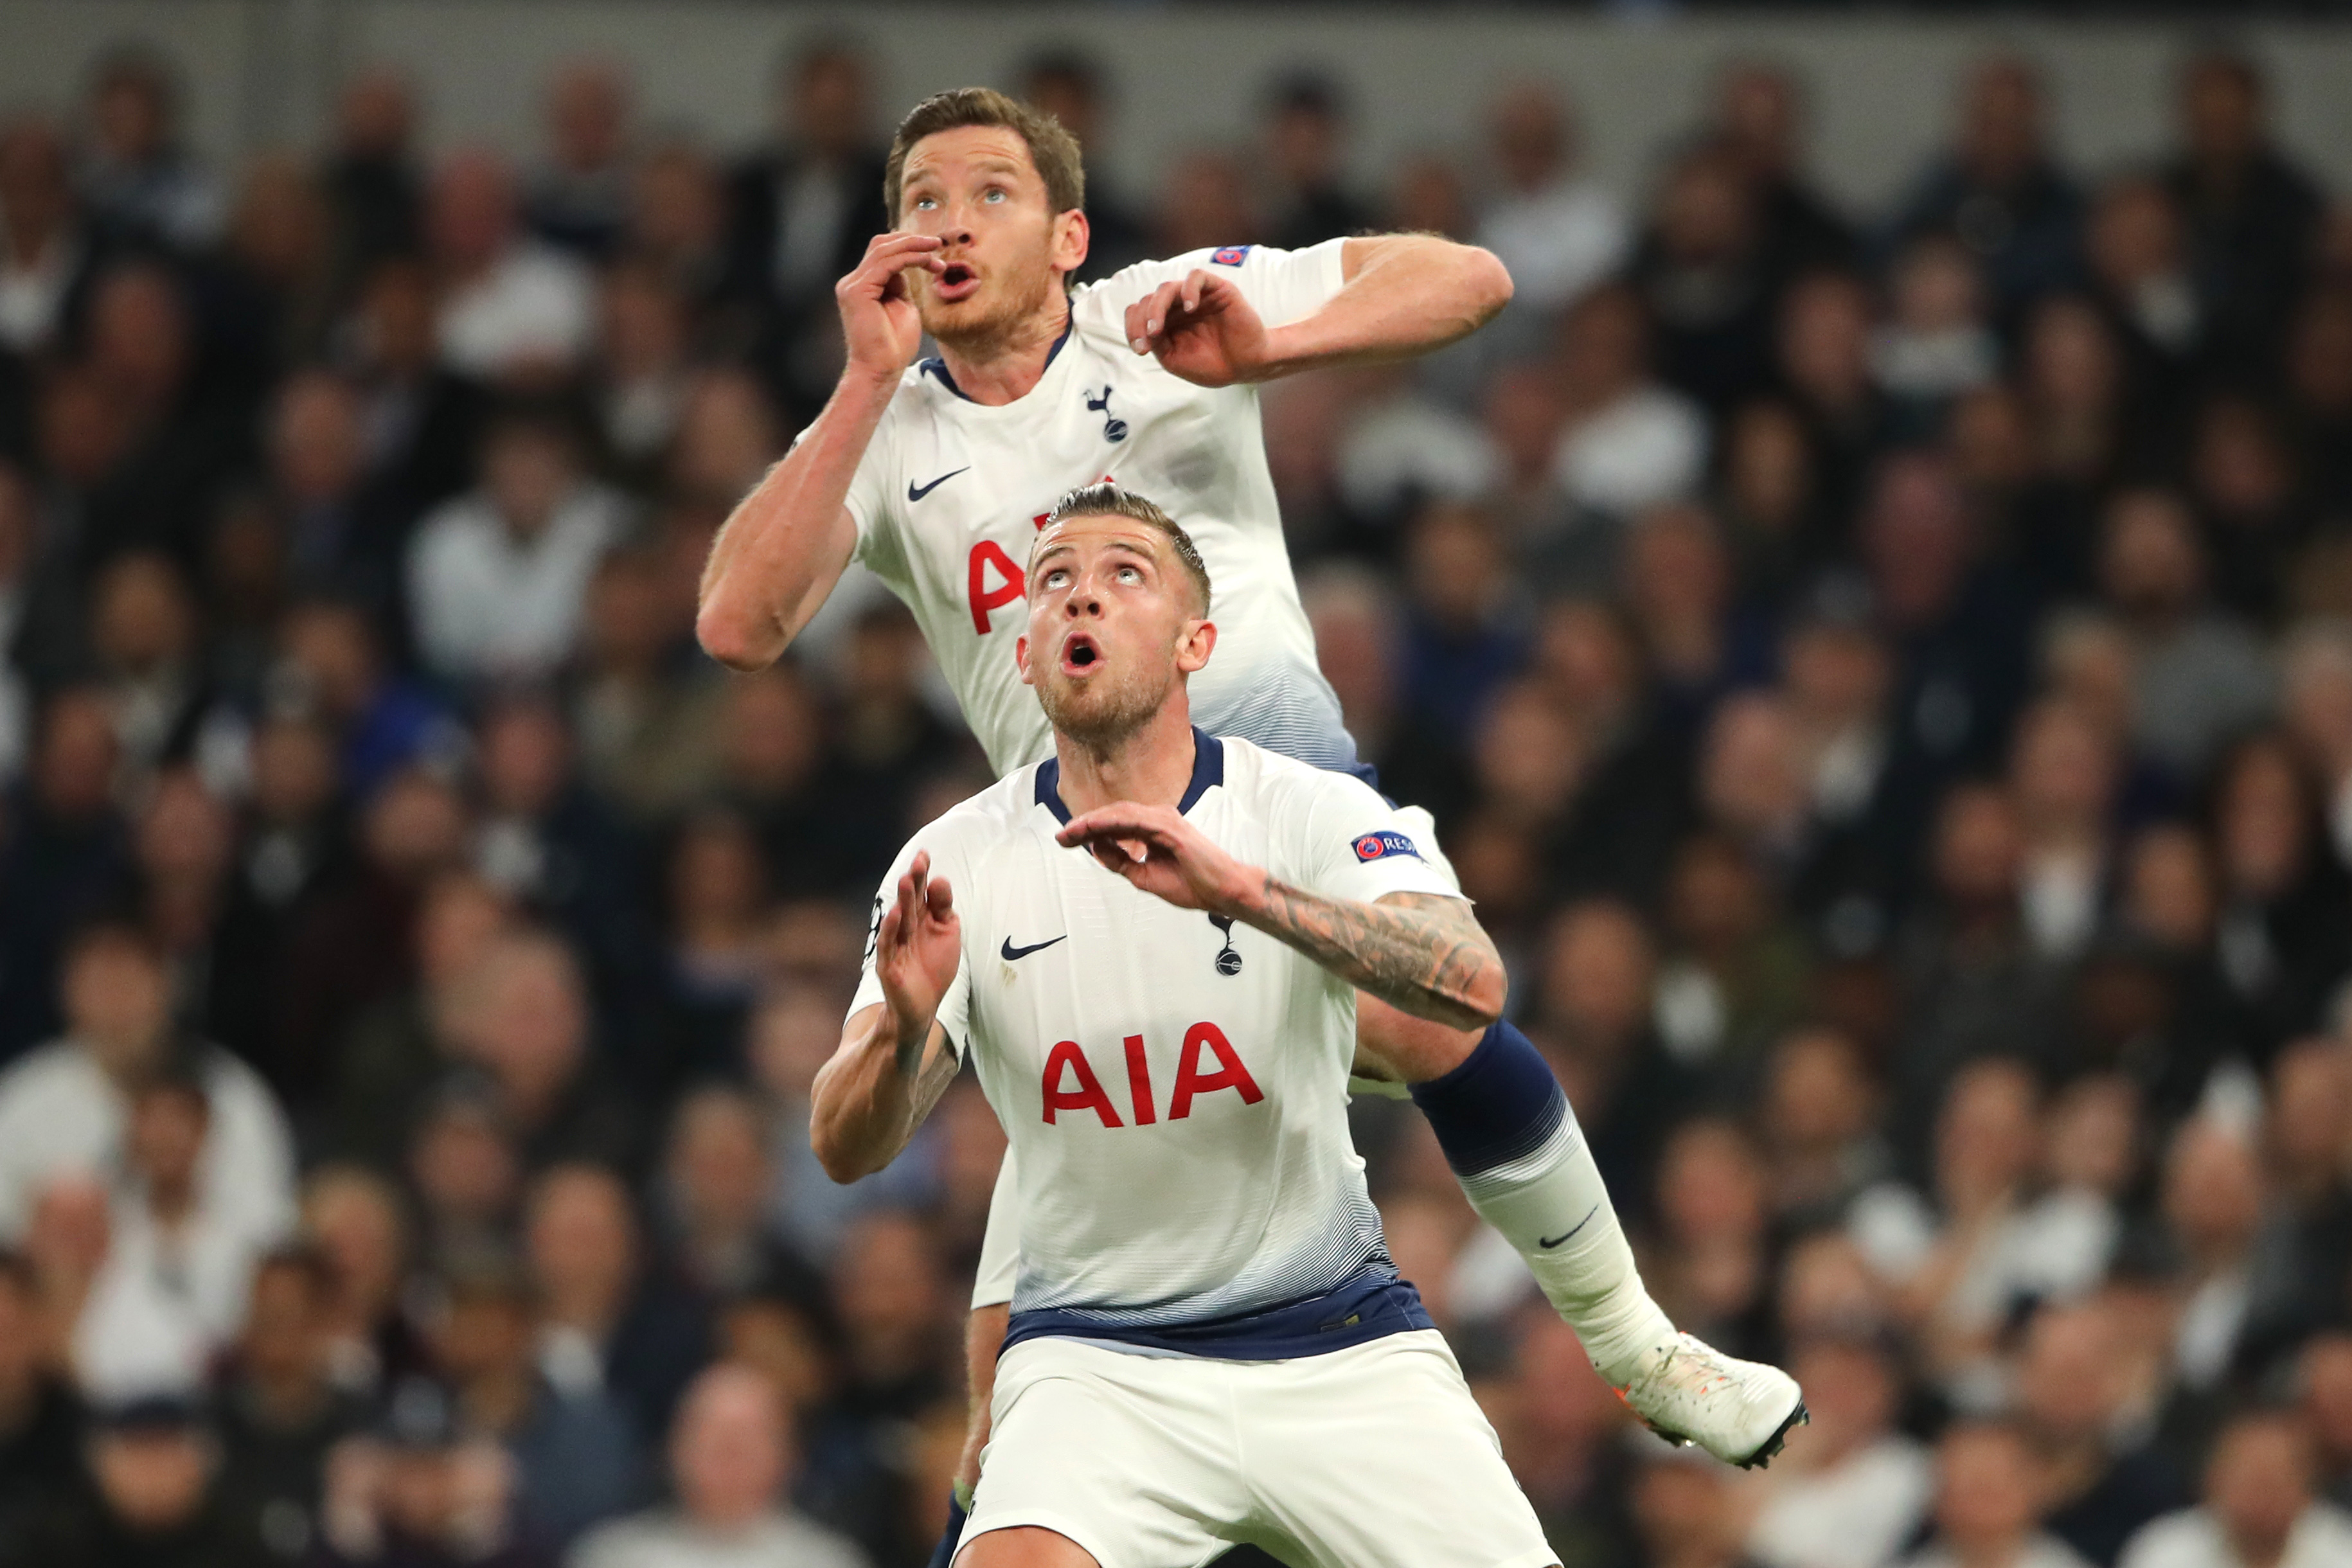 Vertonghen Champions League concussion scare could spark future rule changes